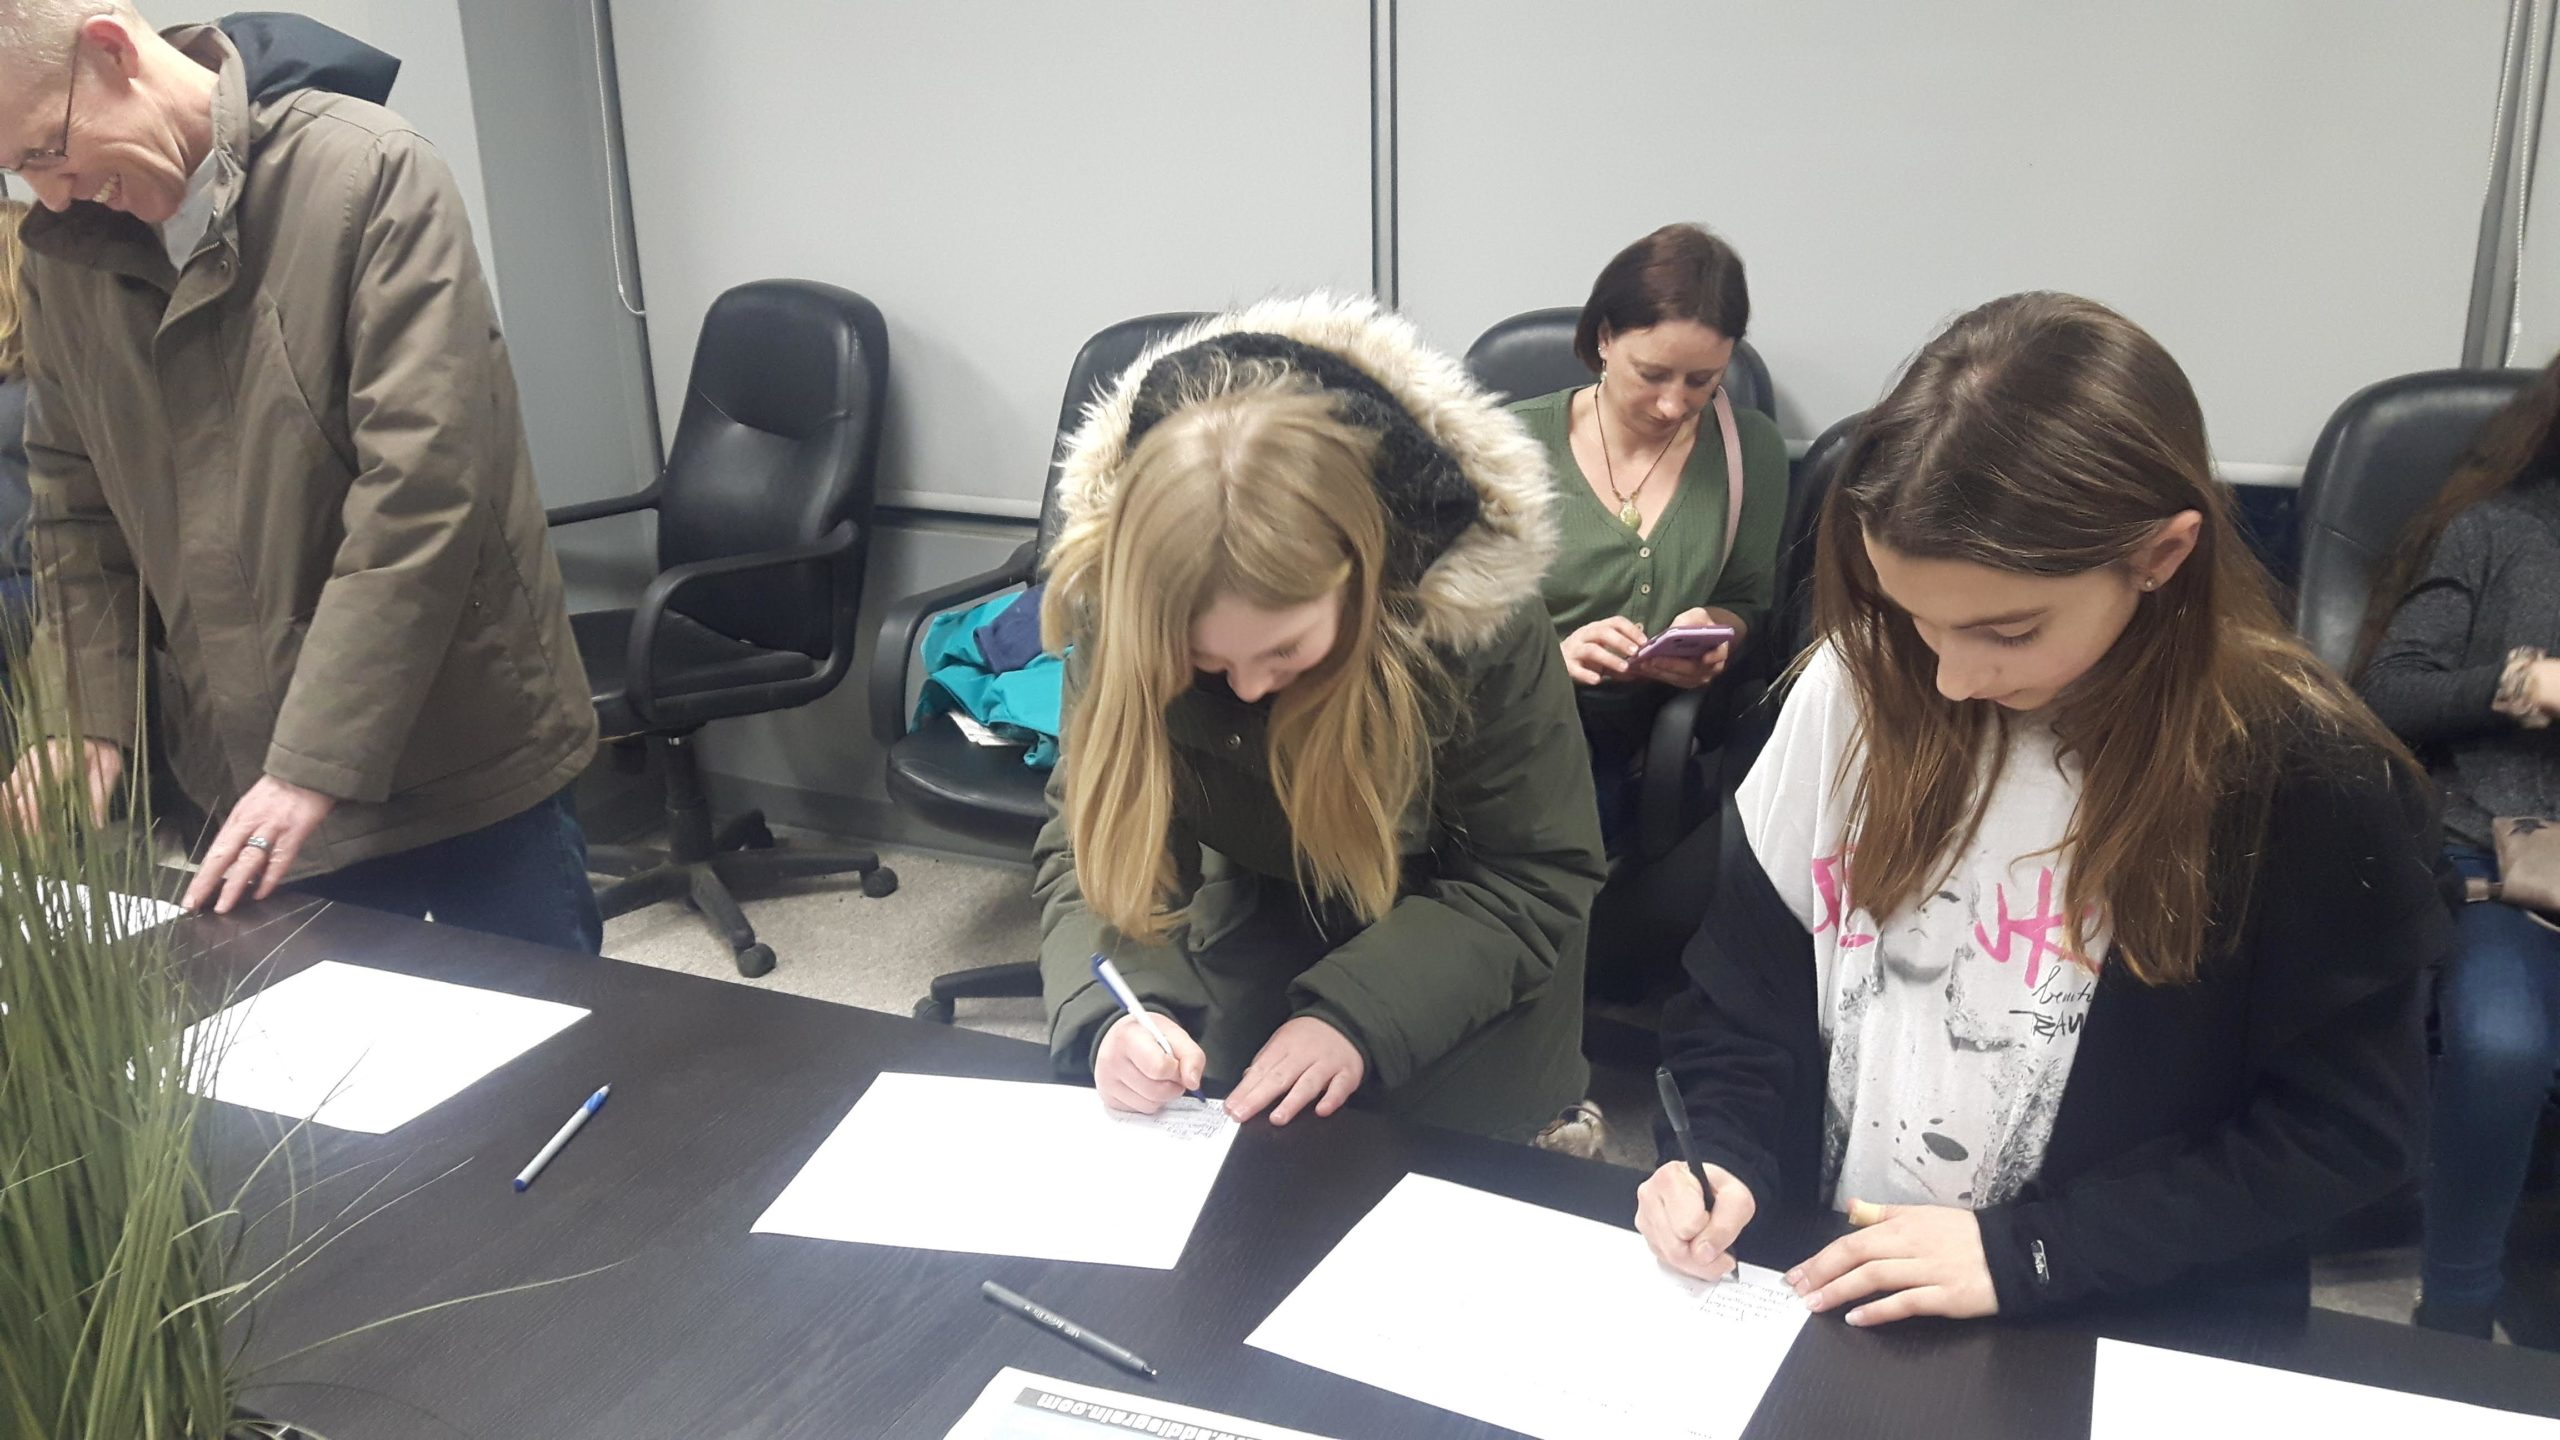 Members signing up on club lists